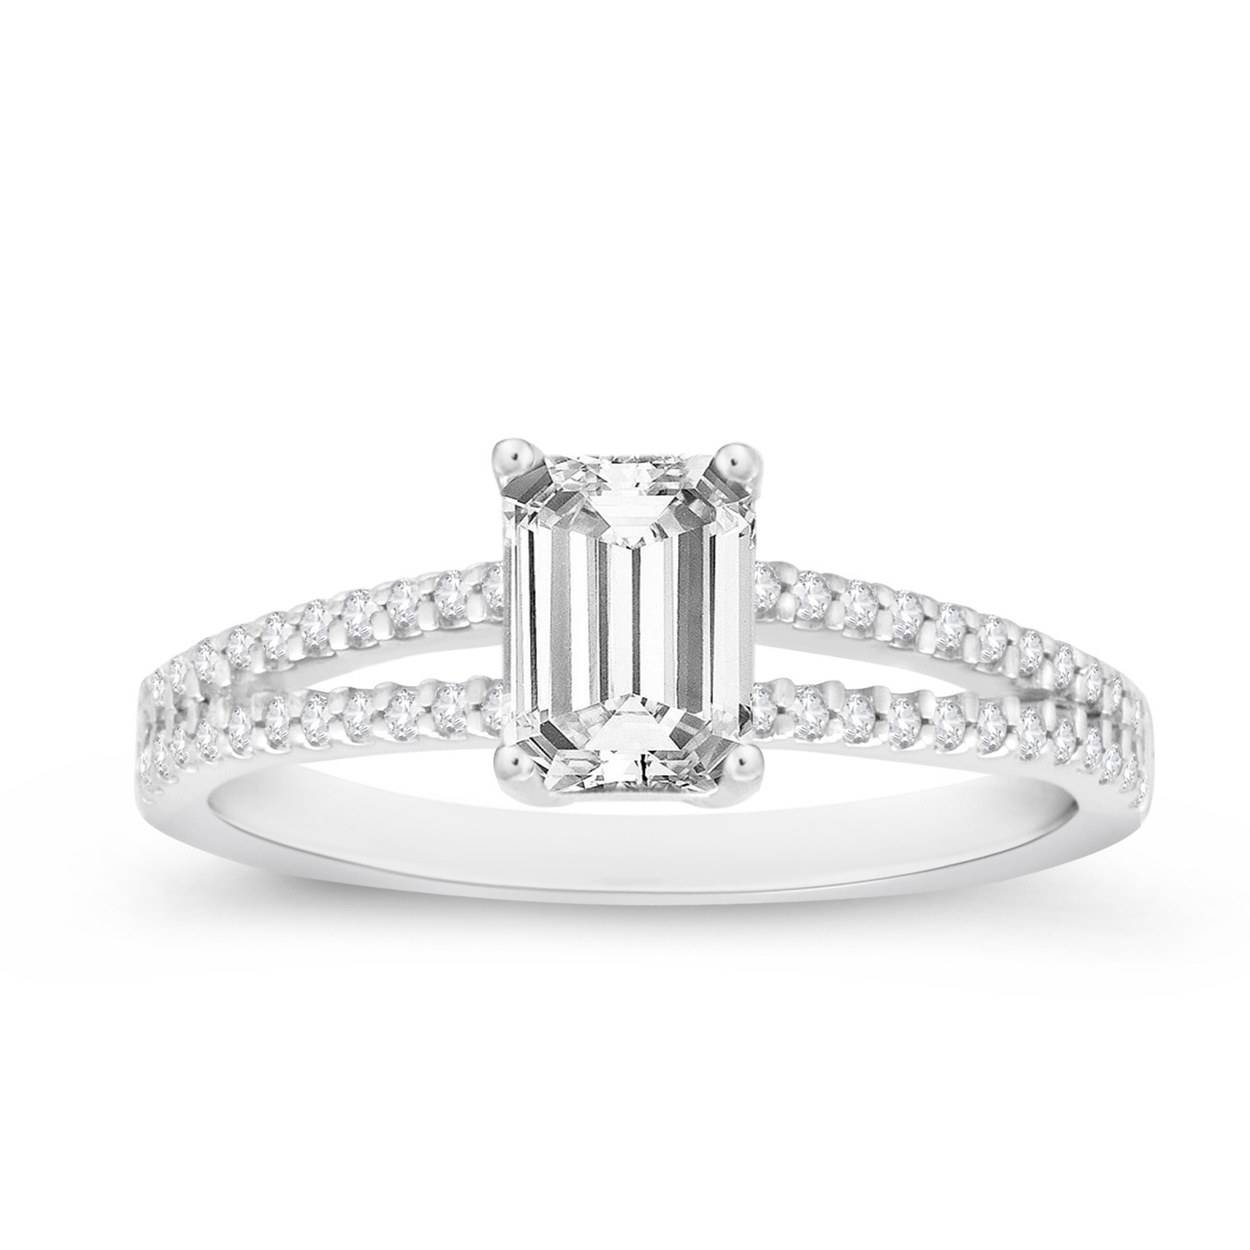 62 Diamond Engagement Rings Under $5,000 | Glamour Pertaining To Emerald Cut Engagement Rings Under (View 2 of 15)